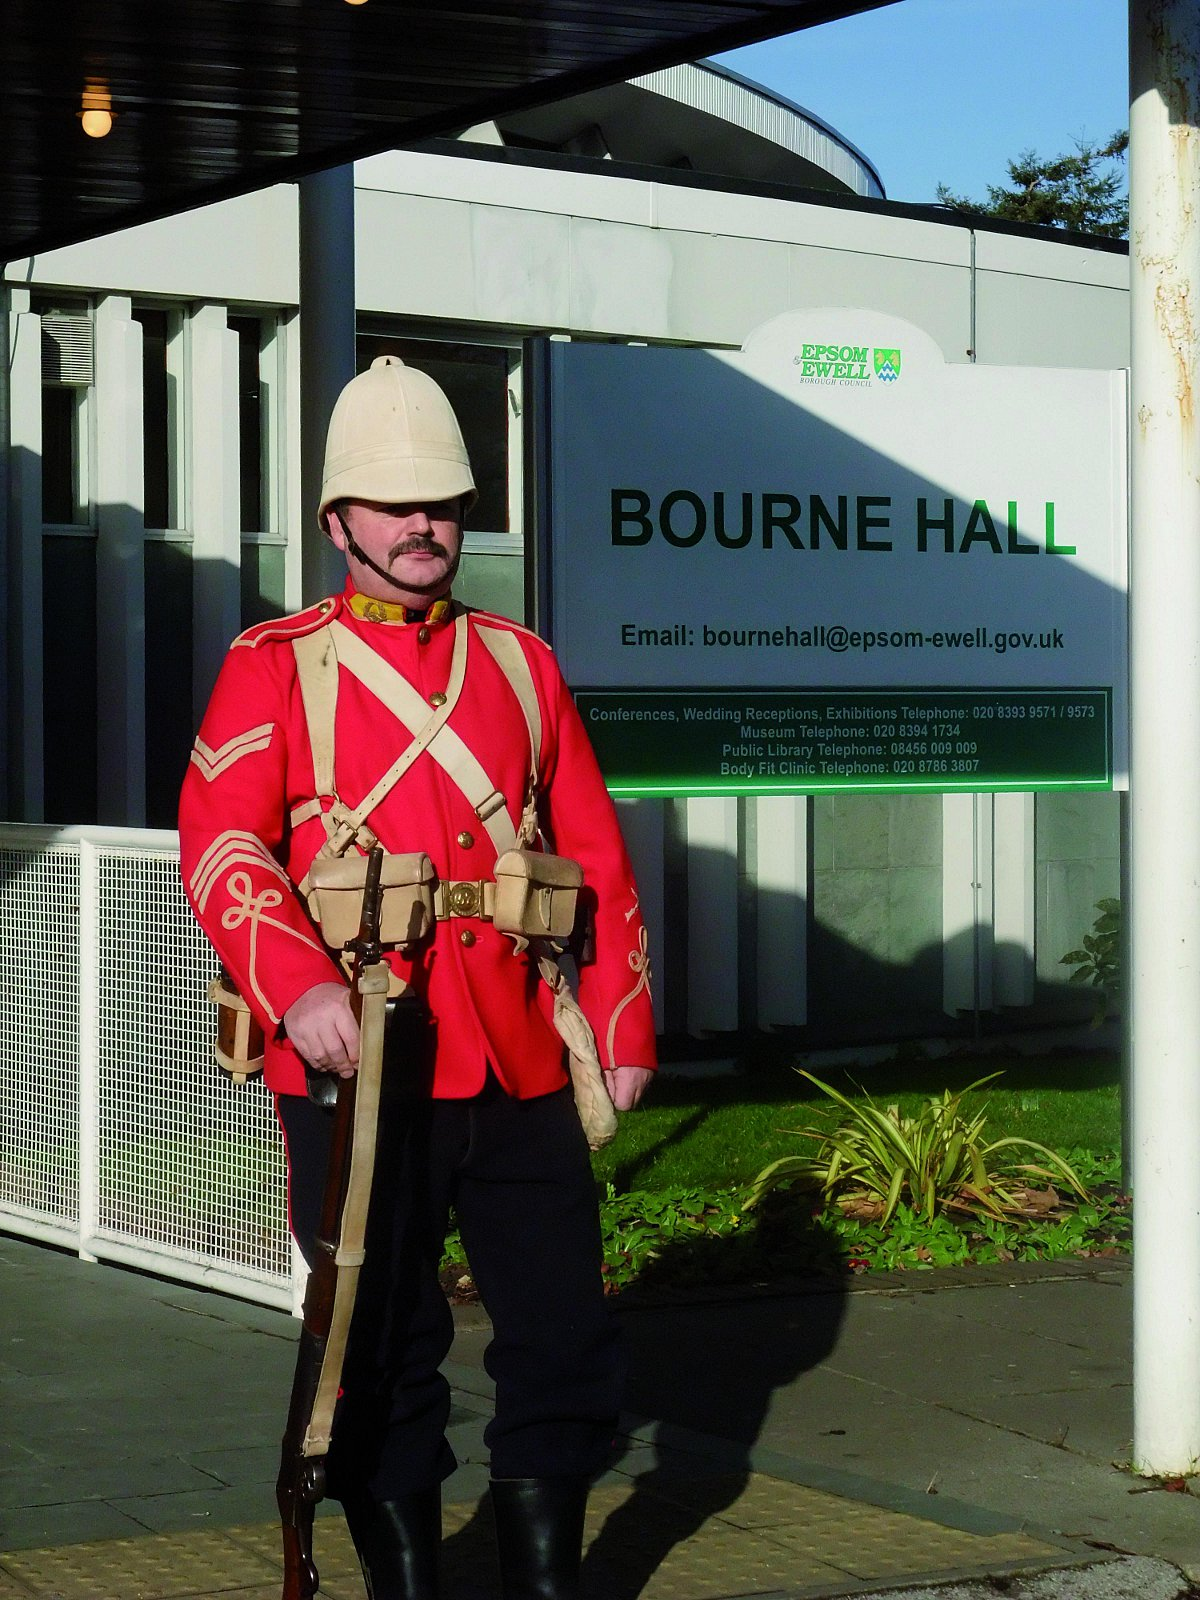 Bourne Hall will be hosting a special Soldiers of Surrey event